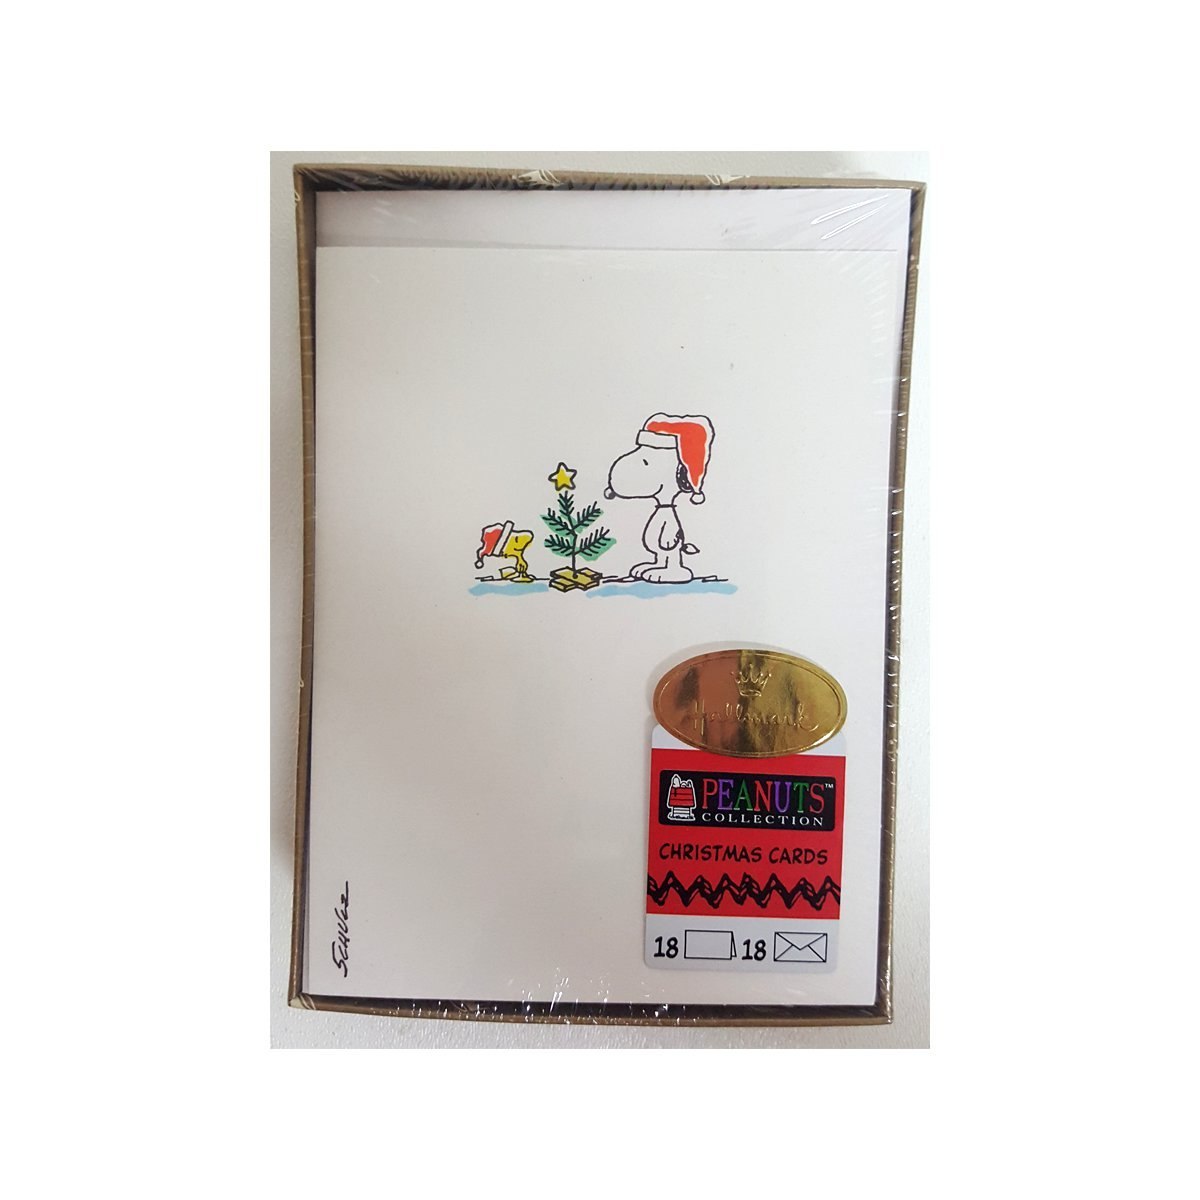 Peanuts Snoopy & Woodstock Box 18 Christmas Cards - Older: Amazon.co ...